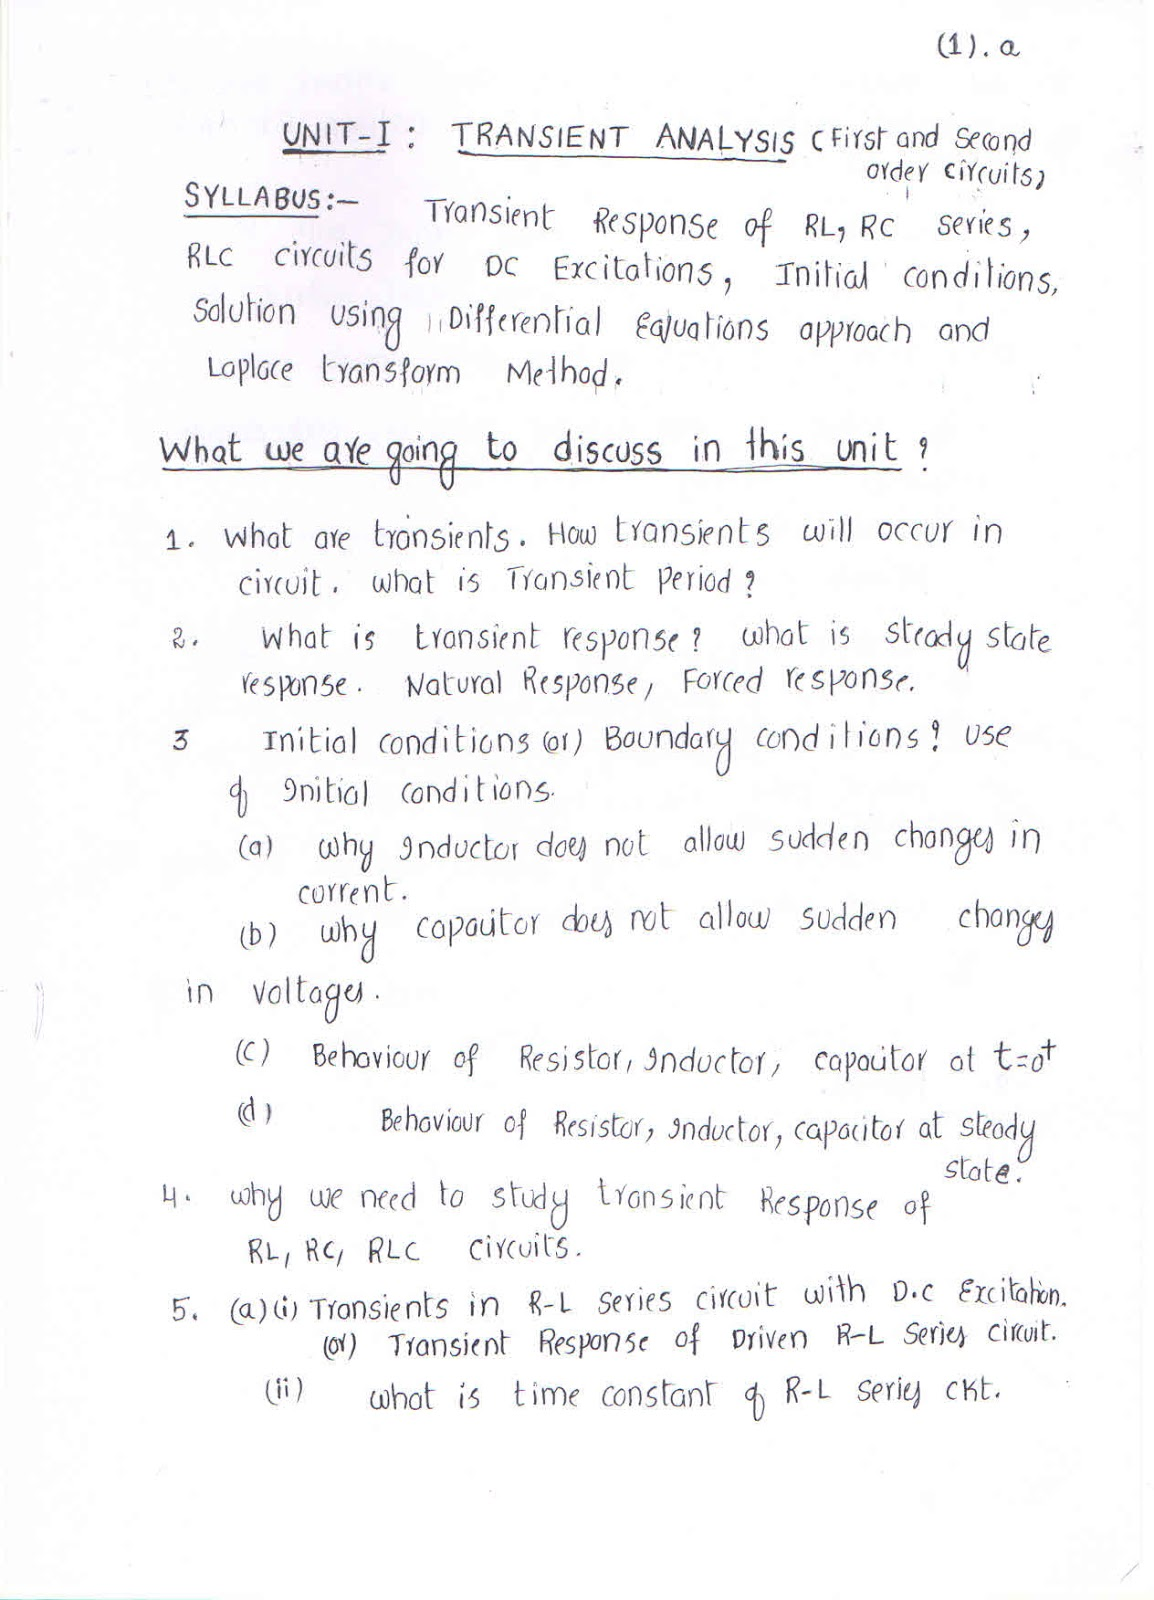 Praveenksphoorthy Transient Analysis Notes First Two Pages Rc Circuit